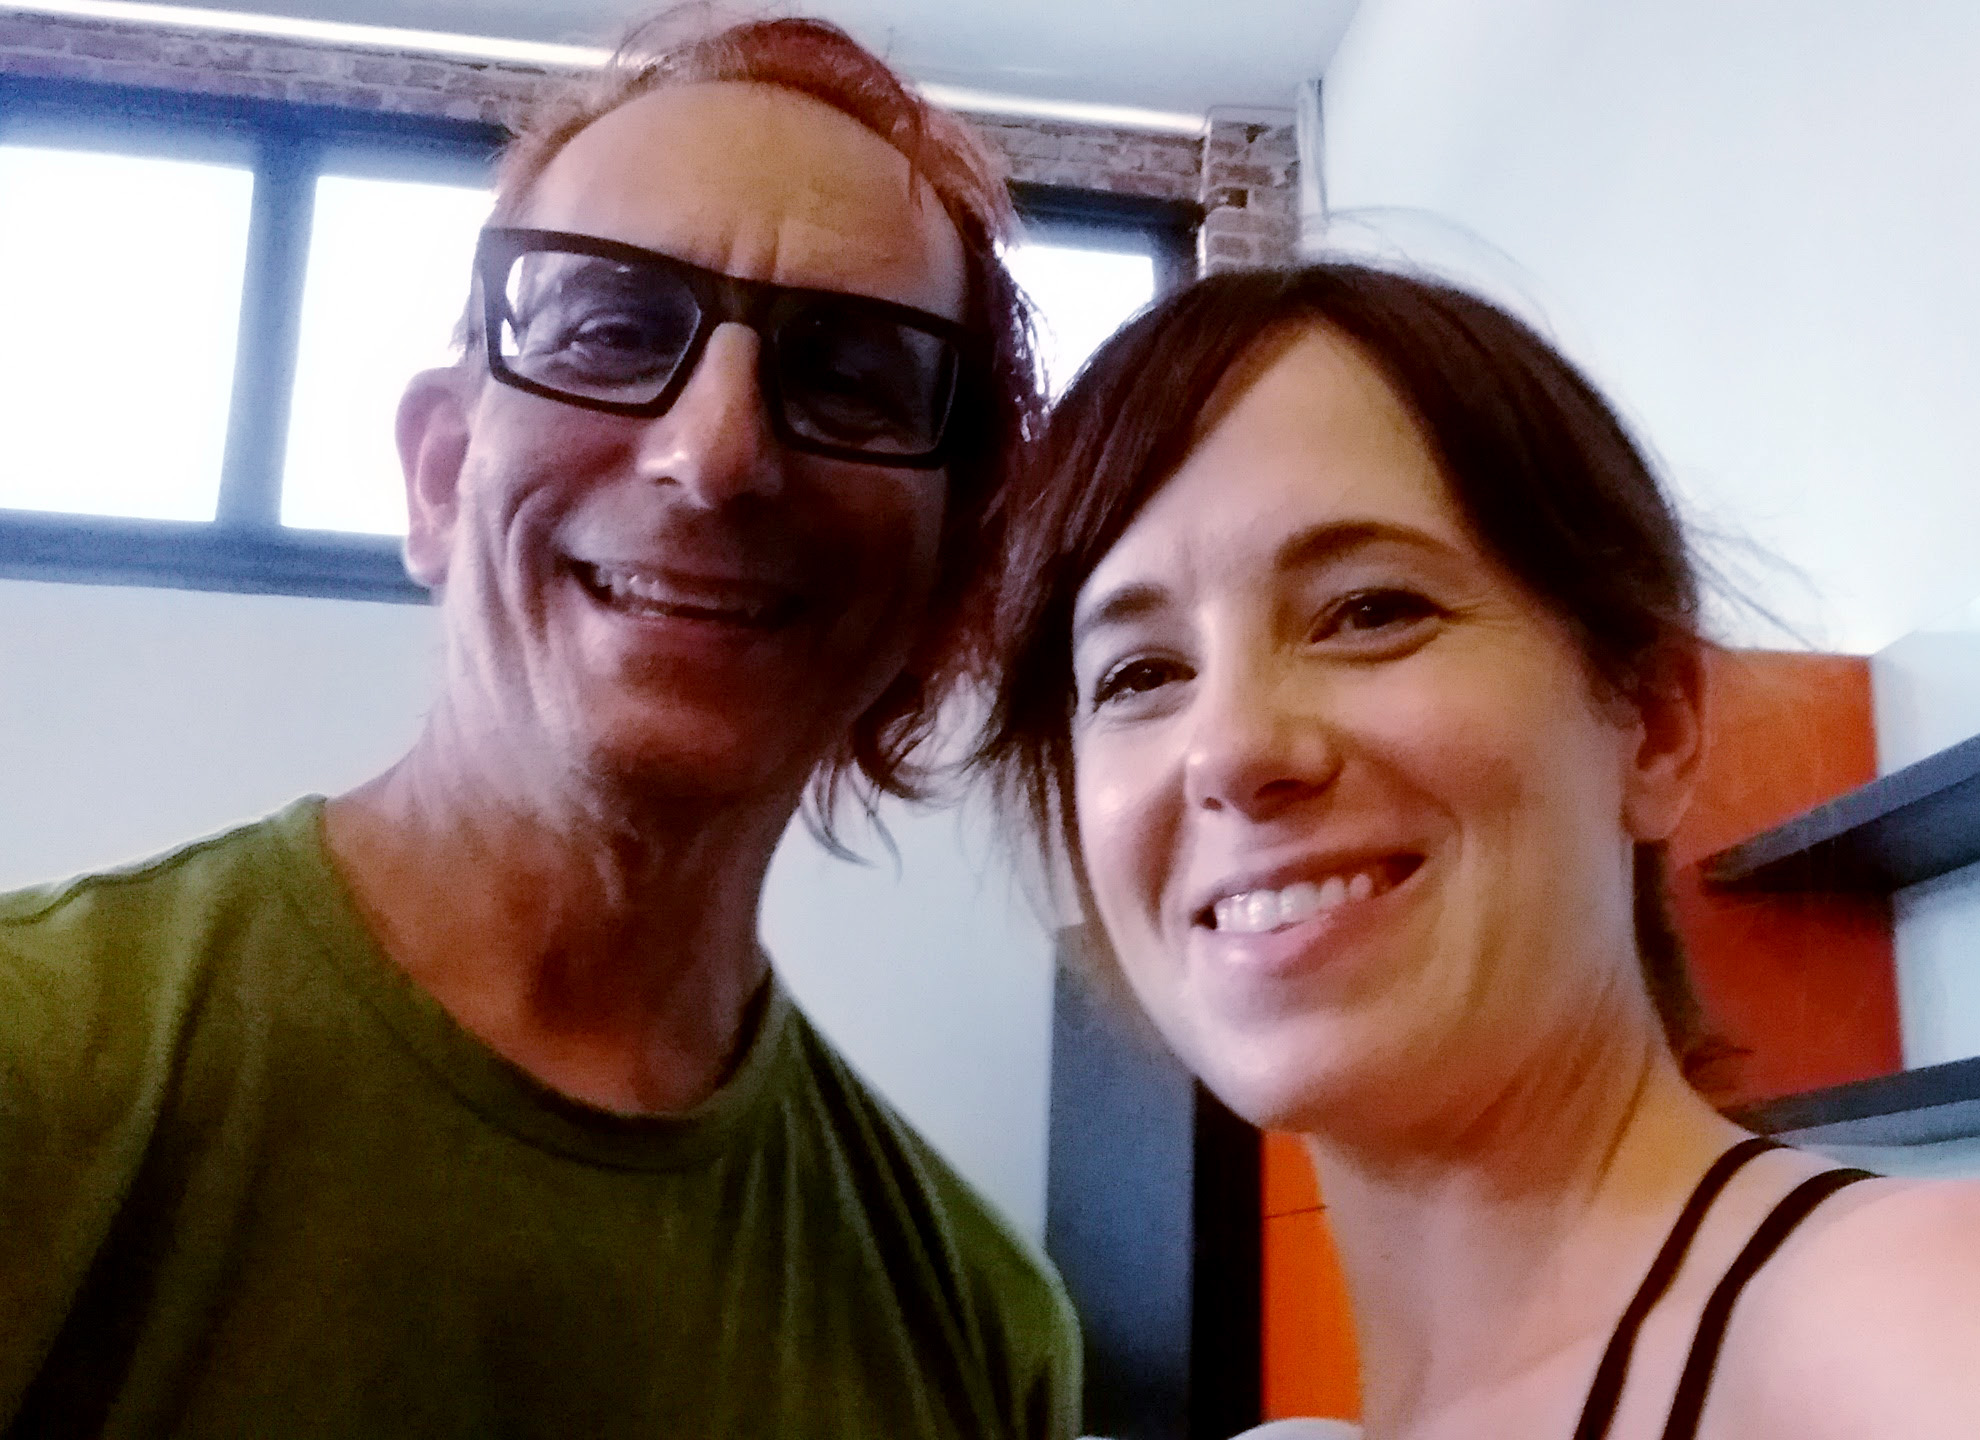 """out of shape old guy, aka """"Me"""", Glenn Zucman, at Pop Physique, Silverlake, CA, 3501 W. Sunset Blvd, LA 26, with Pop Physique founder Jennifer Williams after taking a muscle trembling sweat inducing class with her. But I survived my first class, so yay!"""